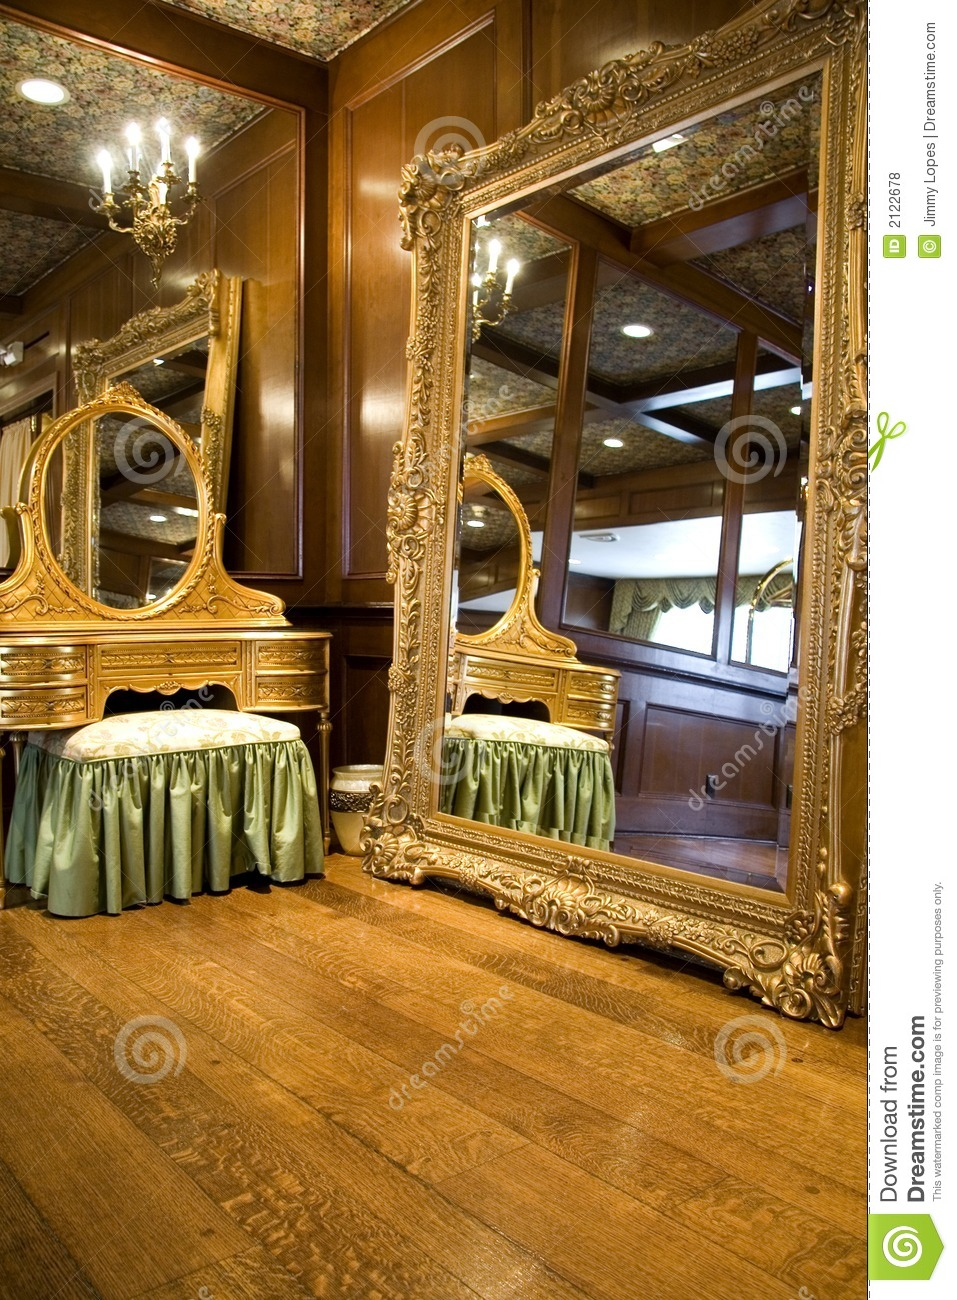 Antique Mirror and Dresser stock photo Image of candles  2122678